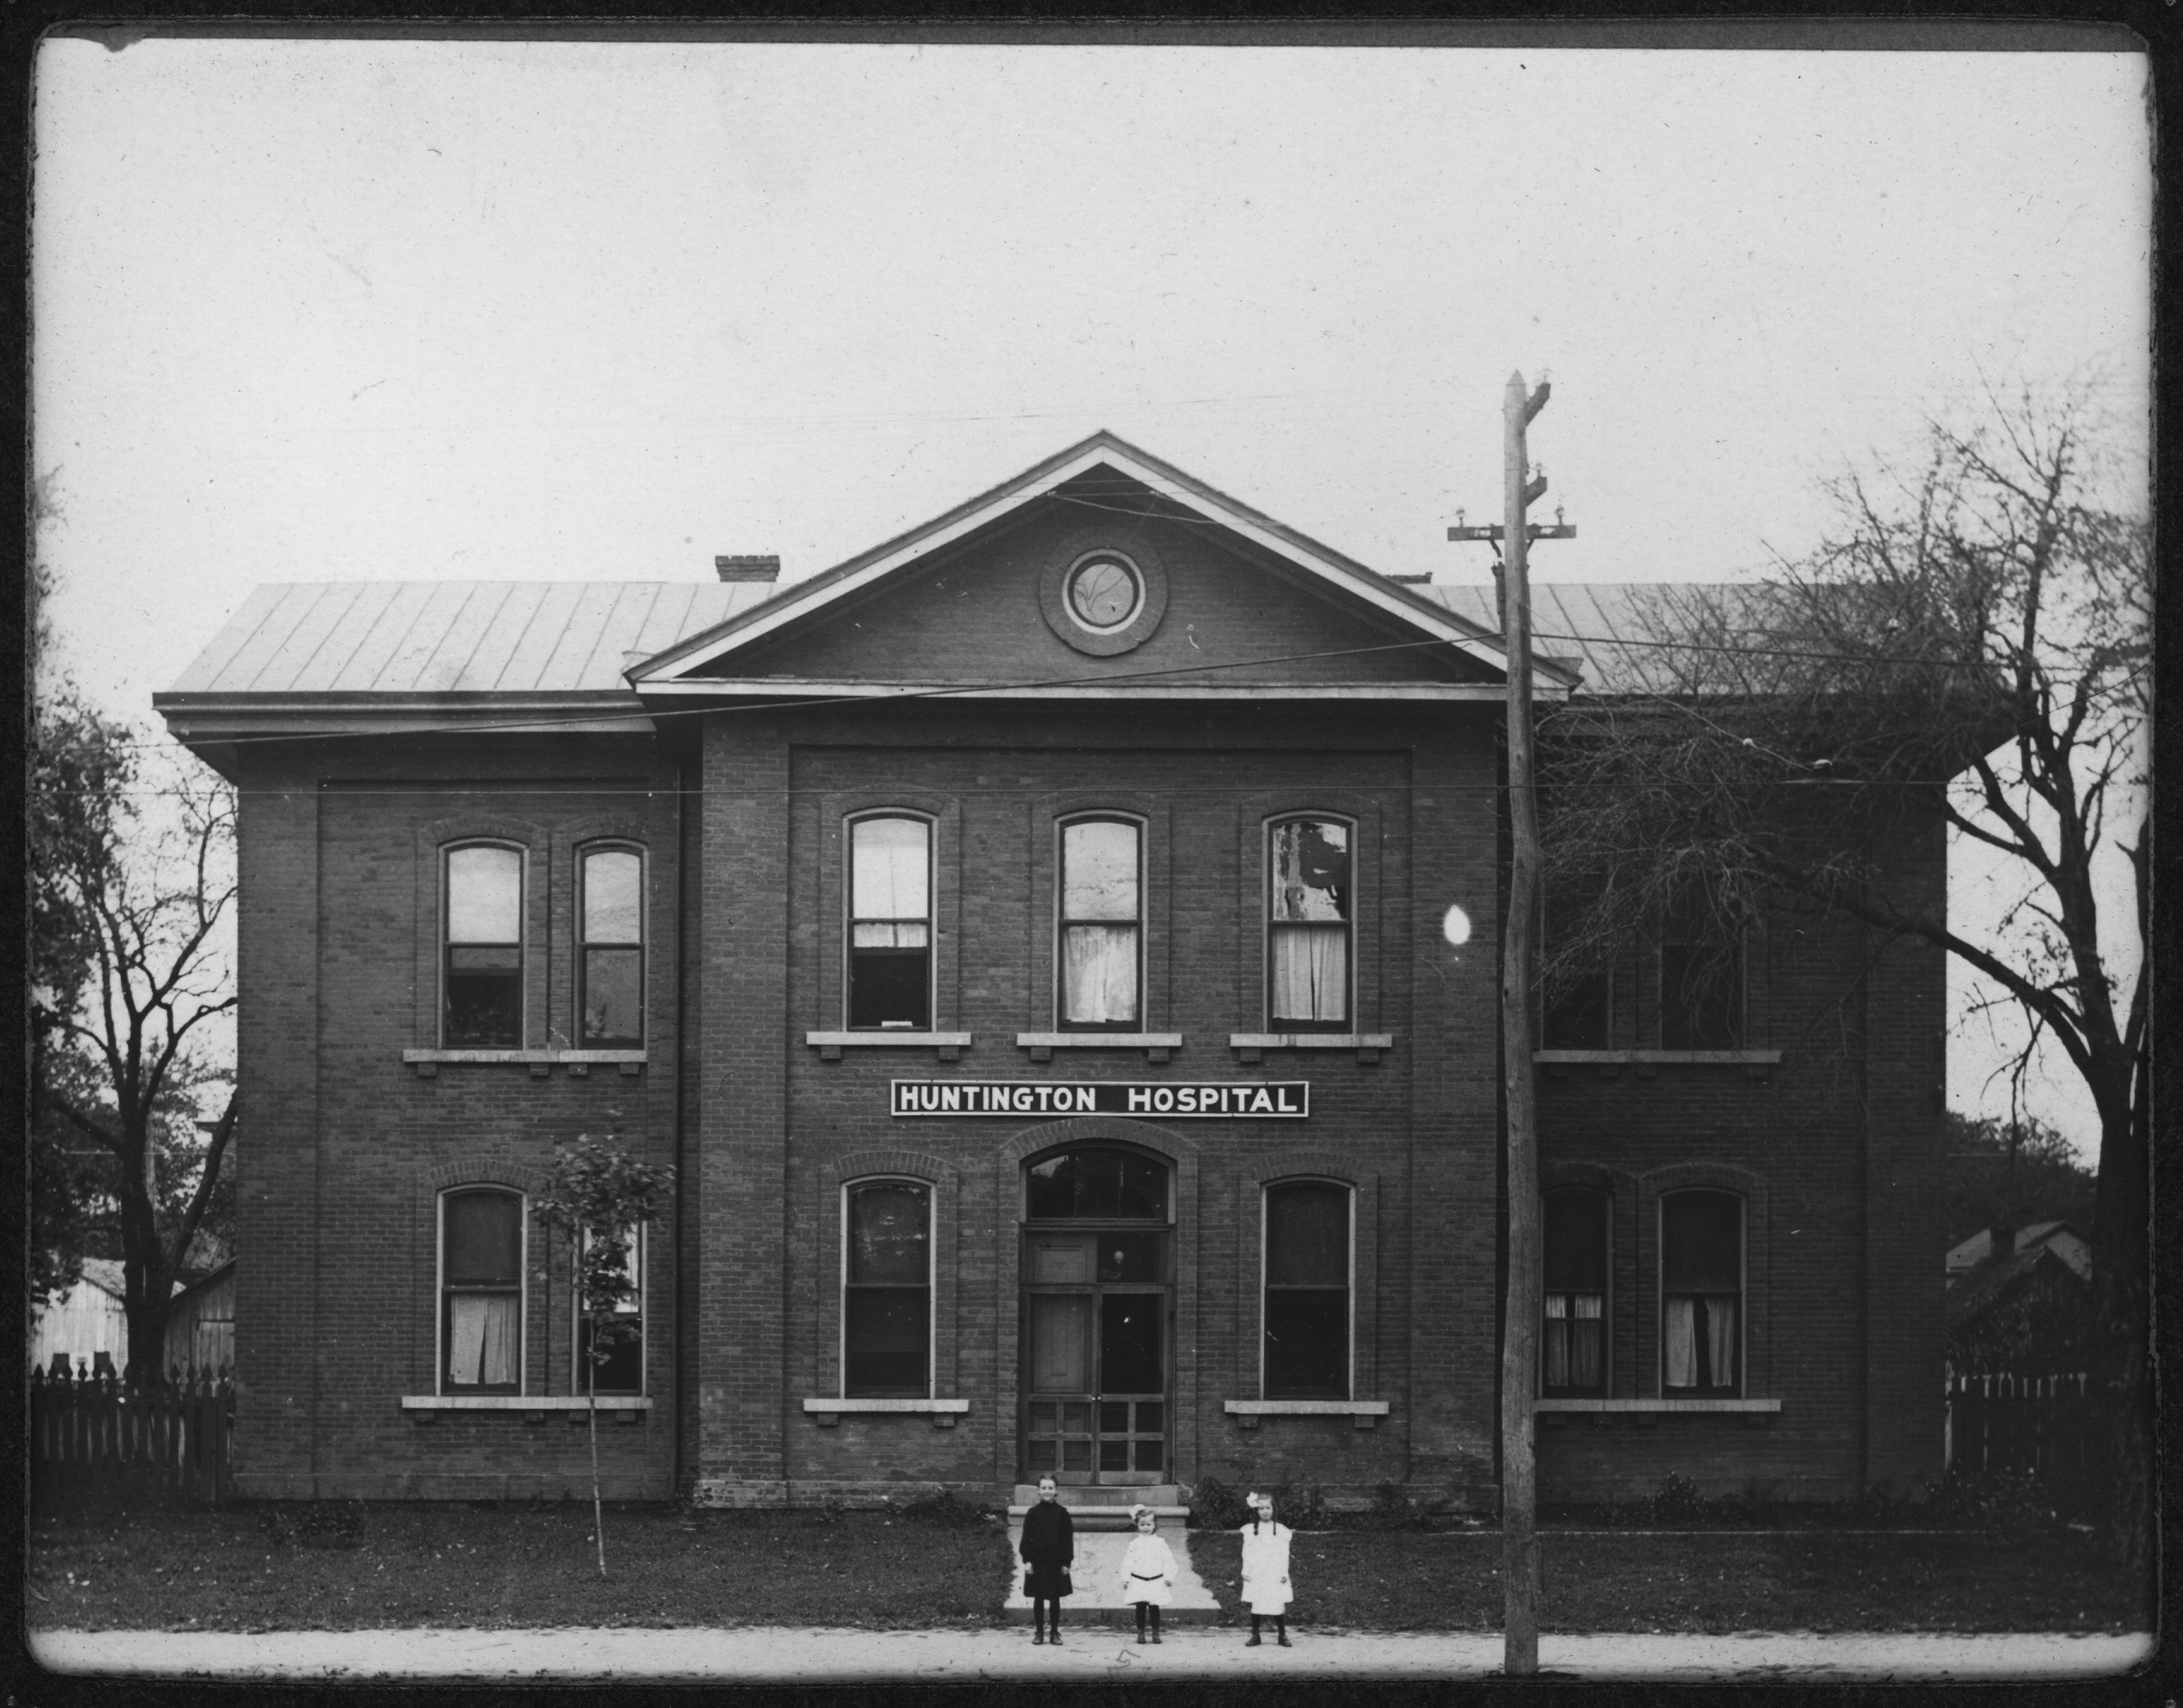 Huntington General Hospital, seen here in 1906, was the first official hospital in the city. Image courtesy of Marshall University Special Collections.